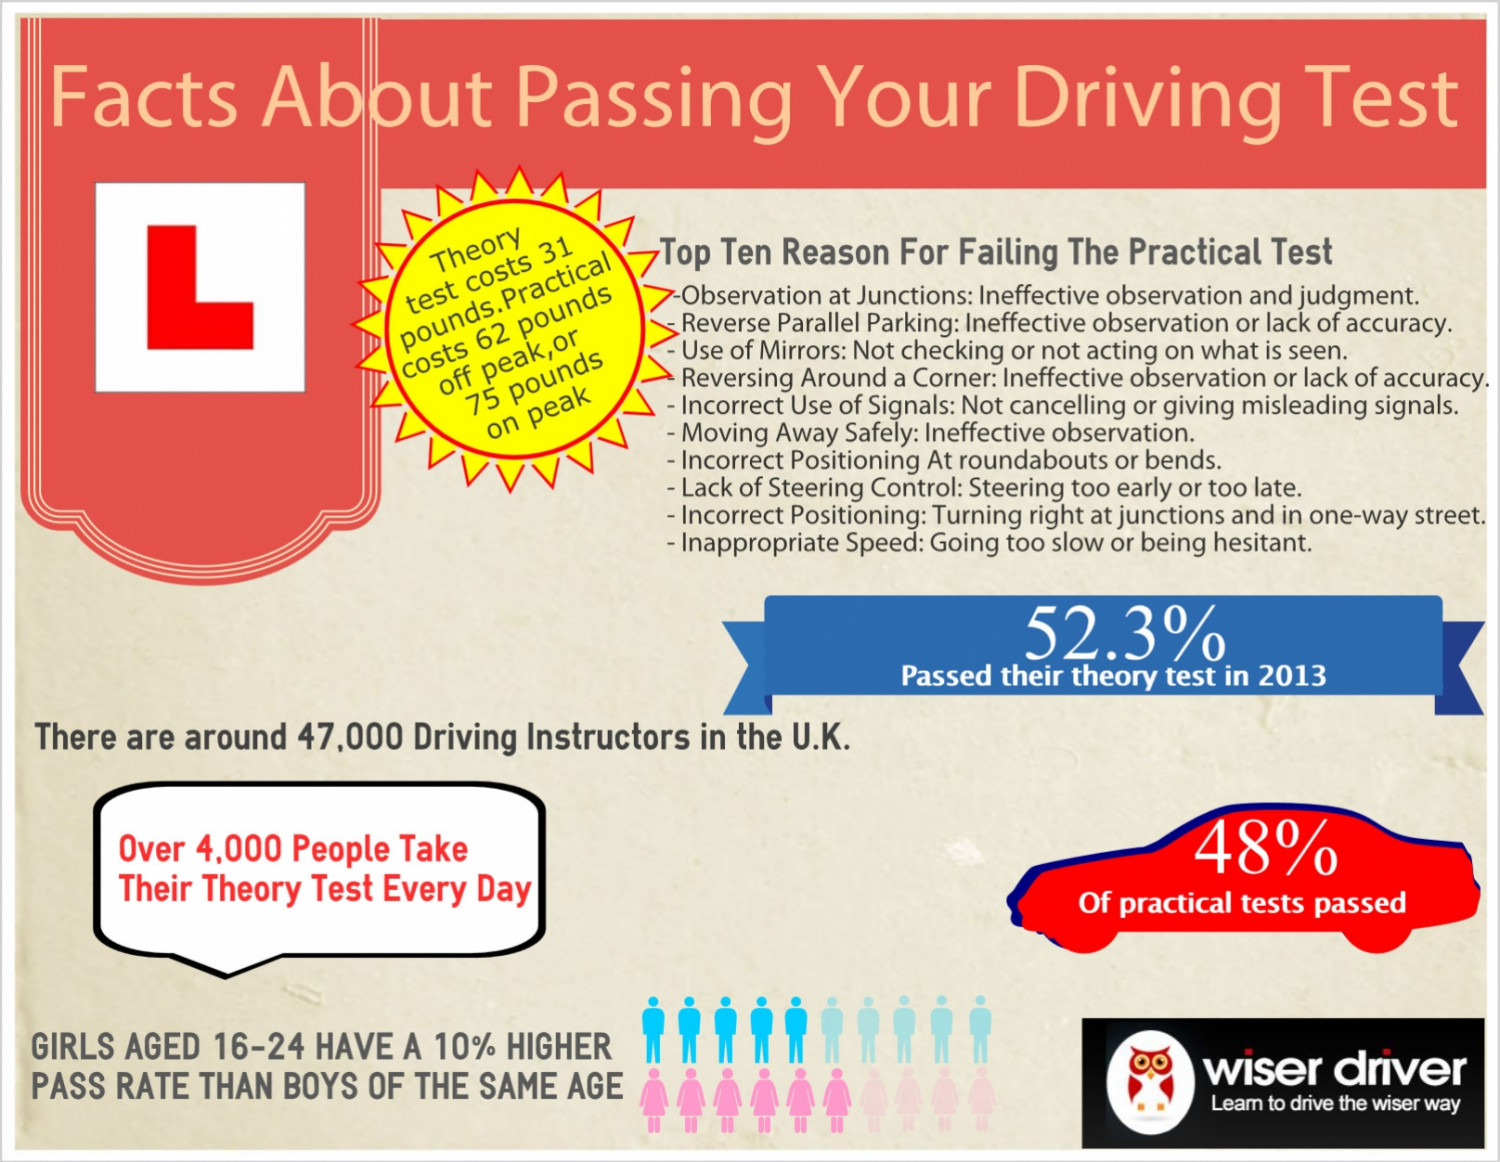 Facts about passing your driving test Infographic